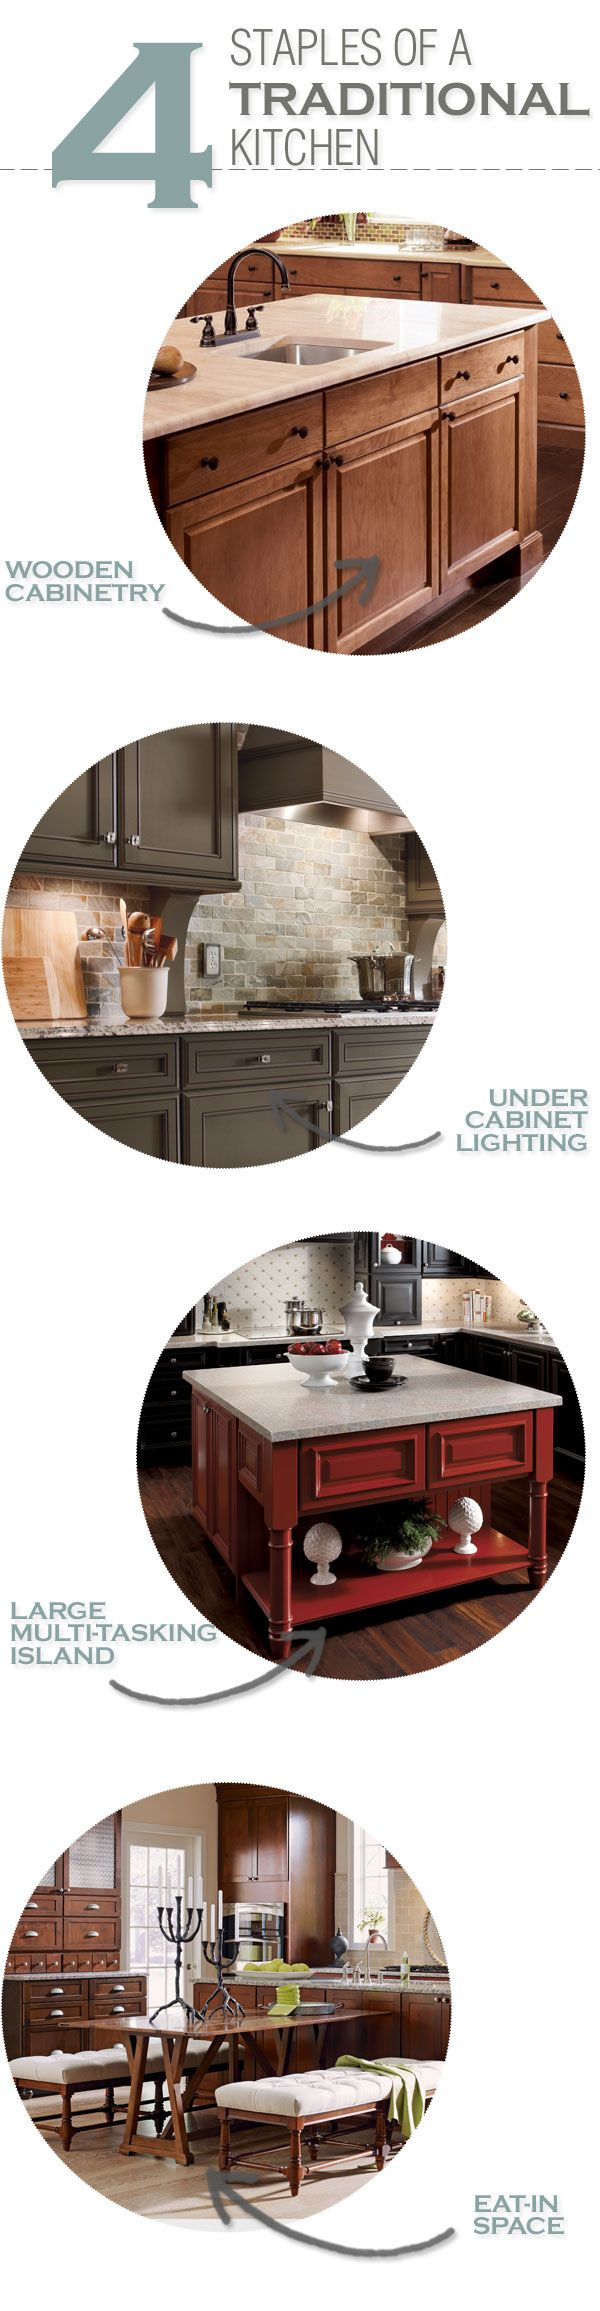 Kitchen Design: Traditional Kitchens - The Home Depot ...